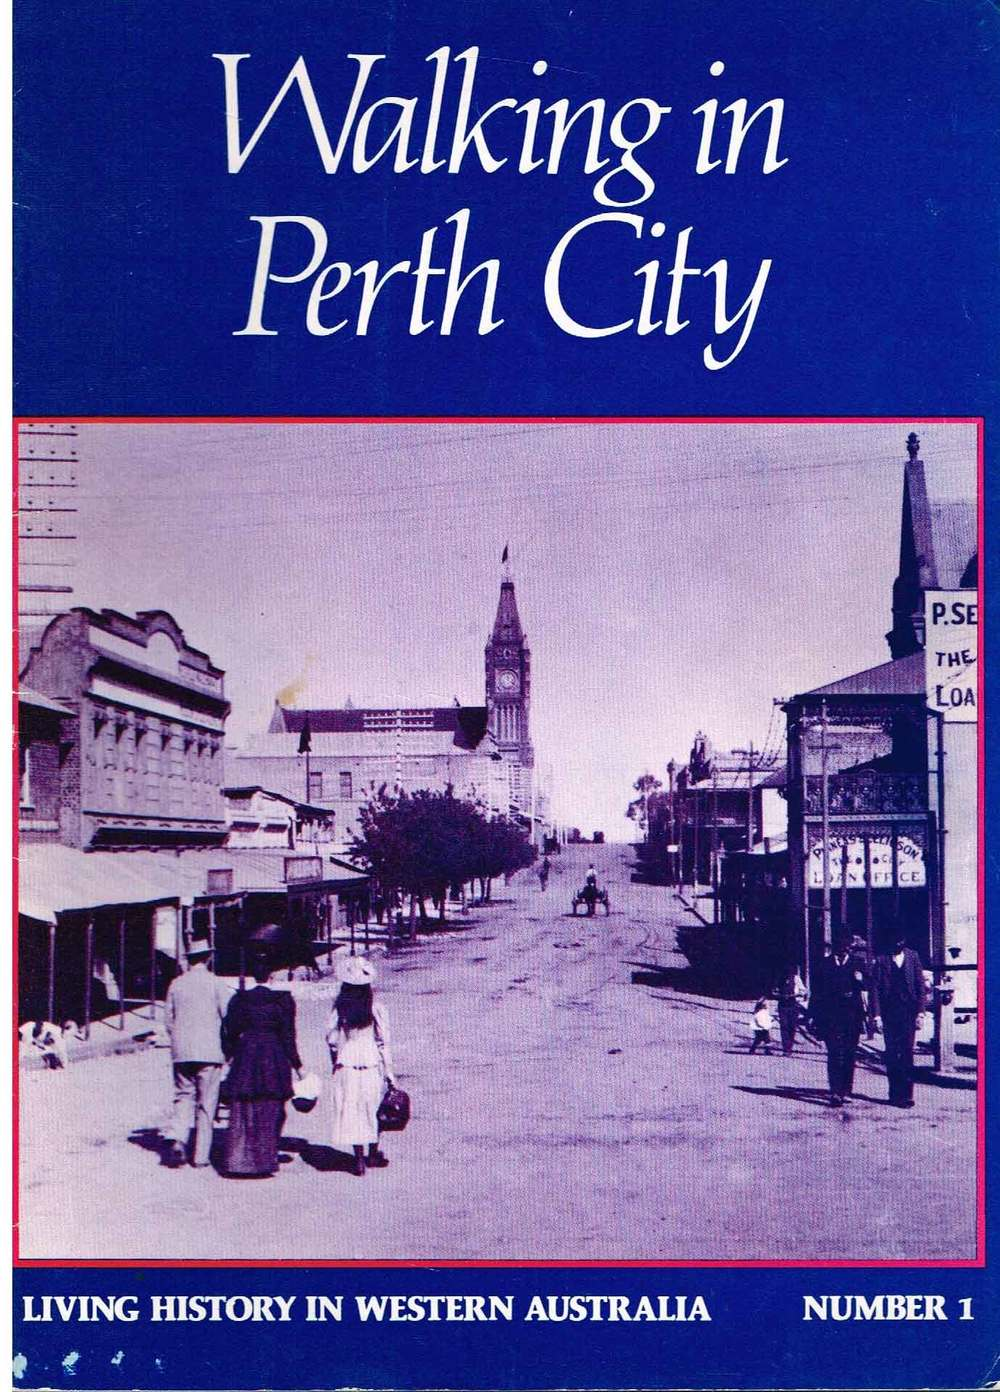 Walking in Perth City : Living history in Western Australia City of Perth